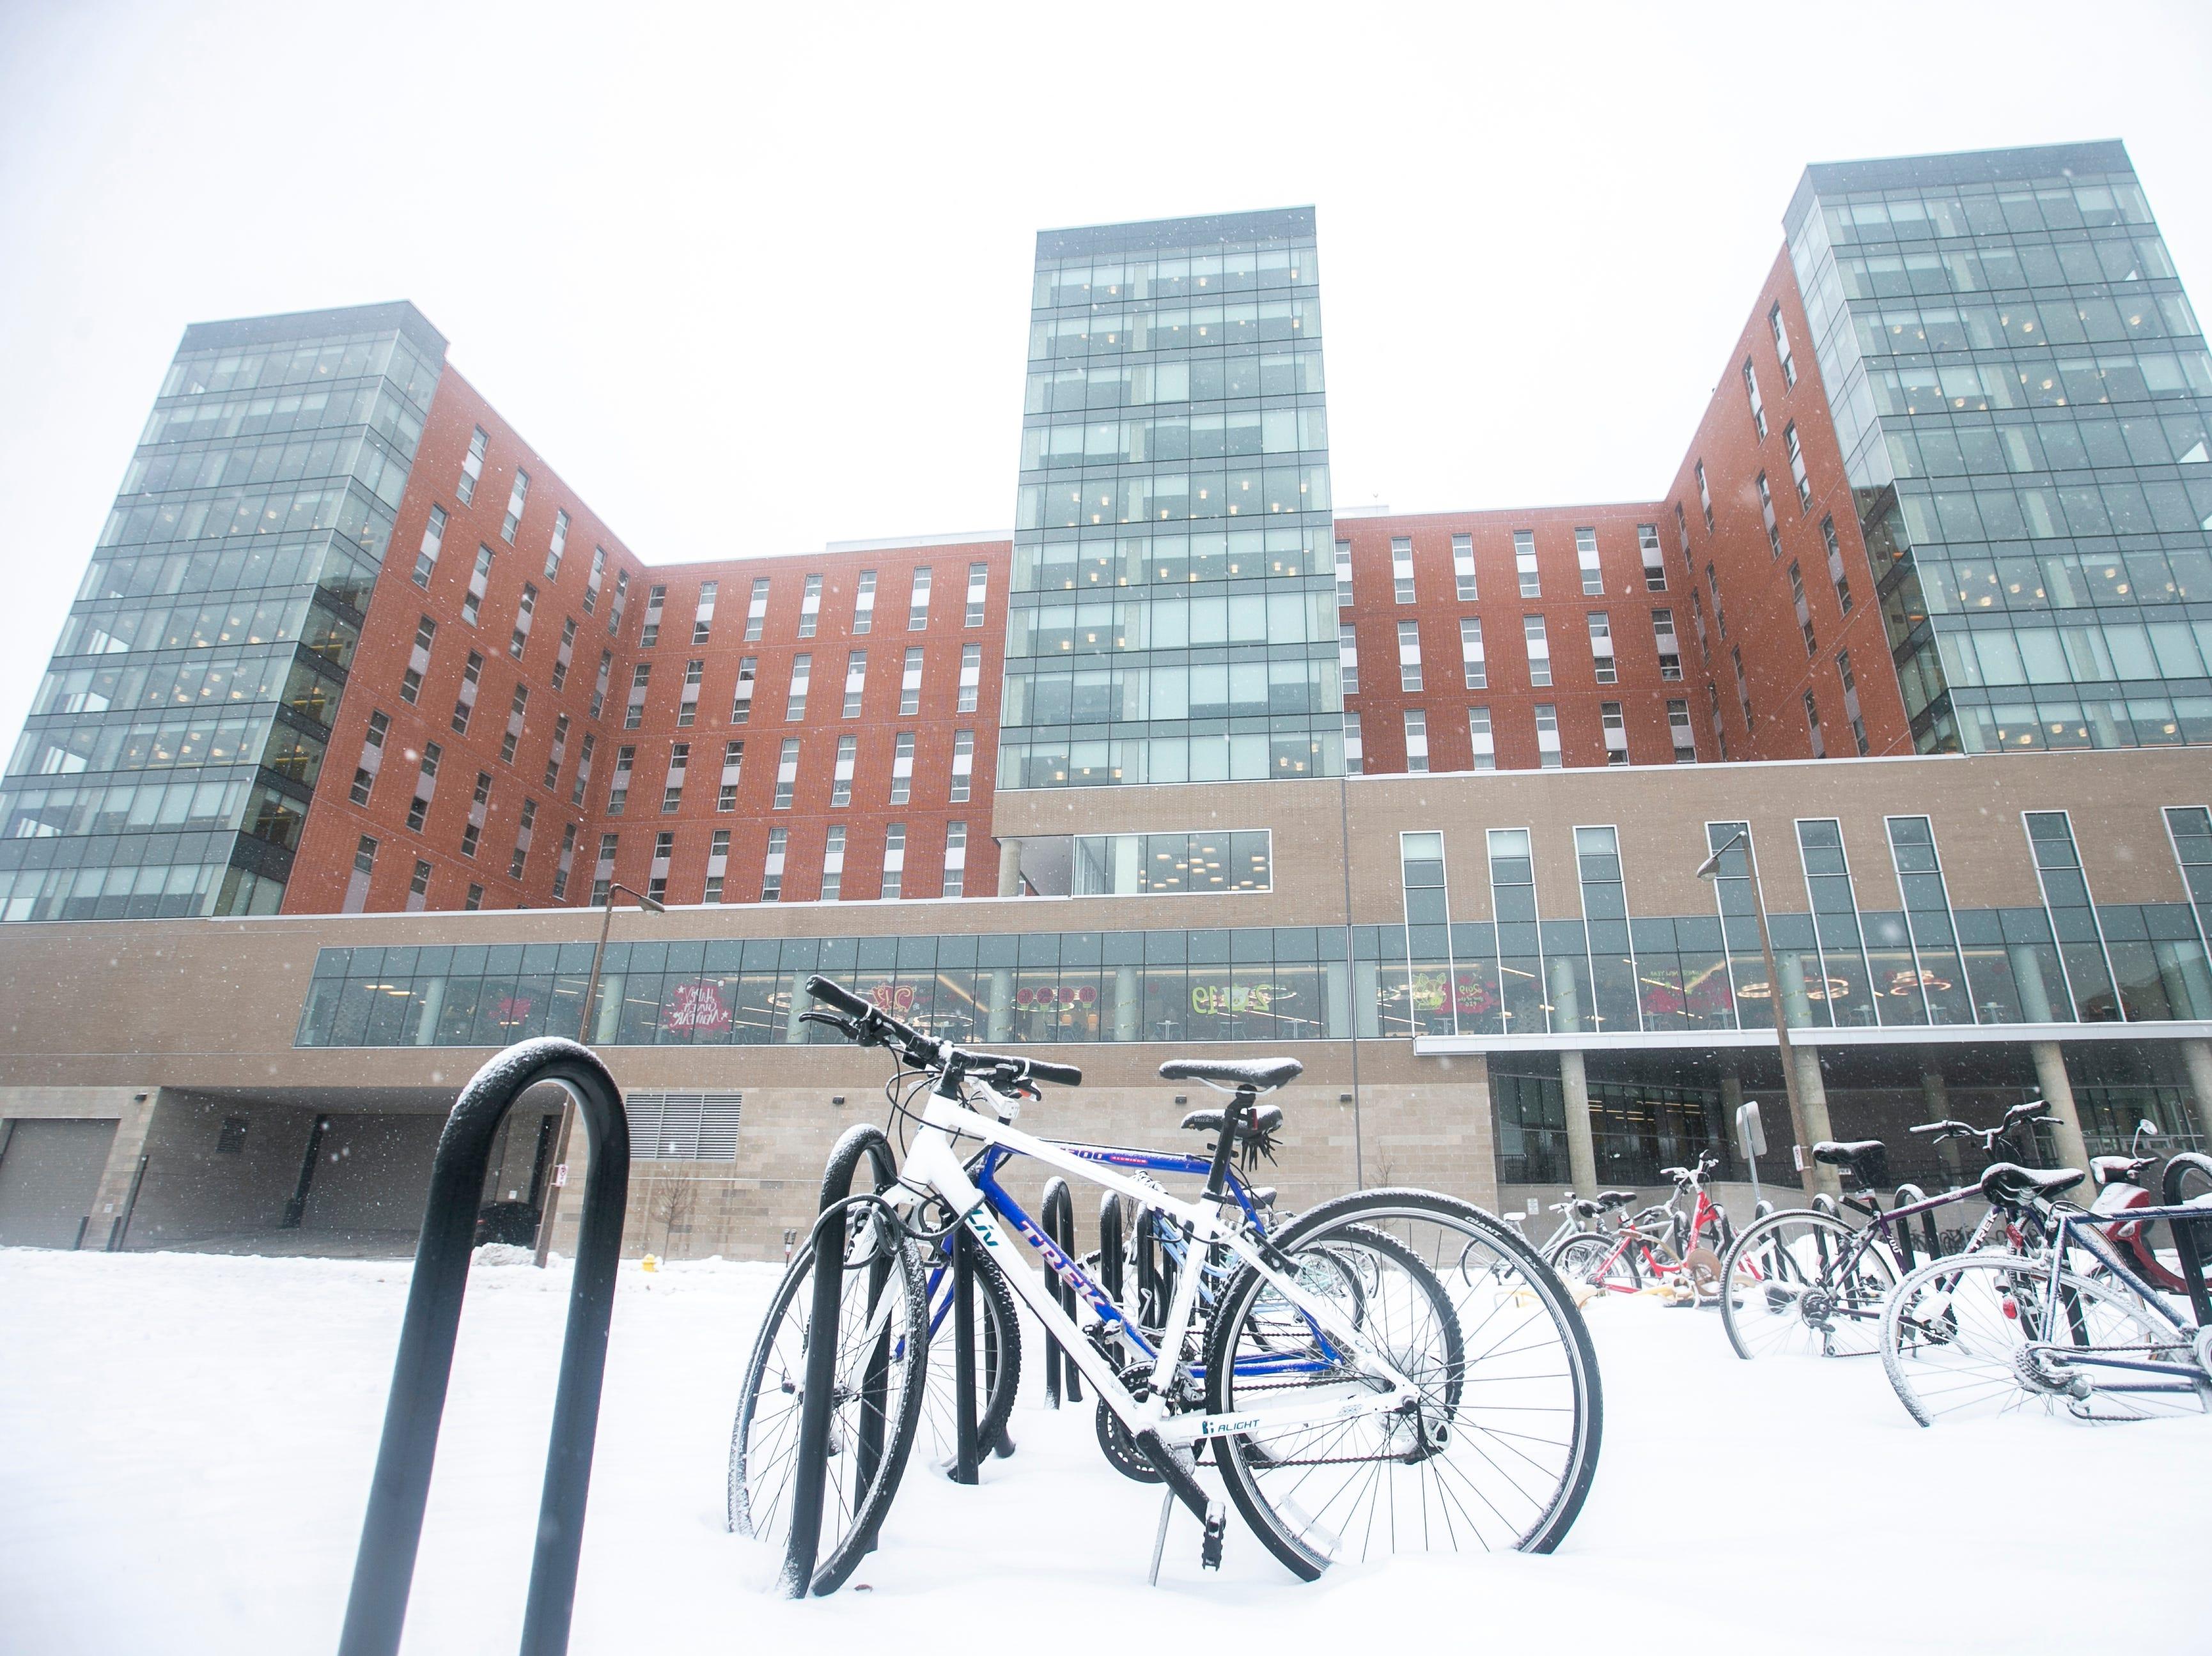 Bikes across from Catlett Residence Hall get covered as light snow falls on Tuesday, Jan. 22, 2019, in Iowa City, Iowa.